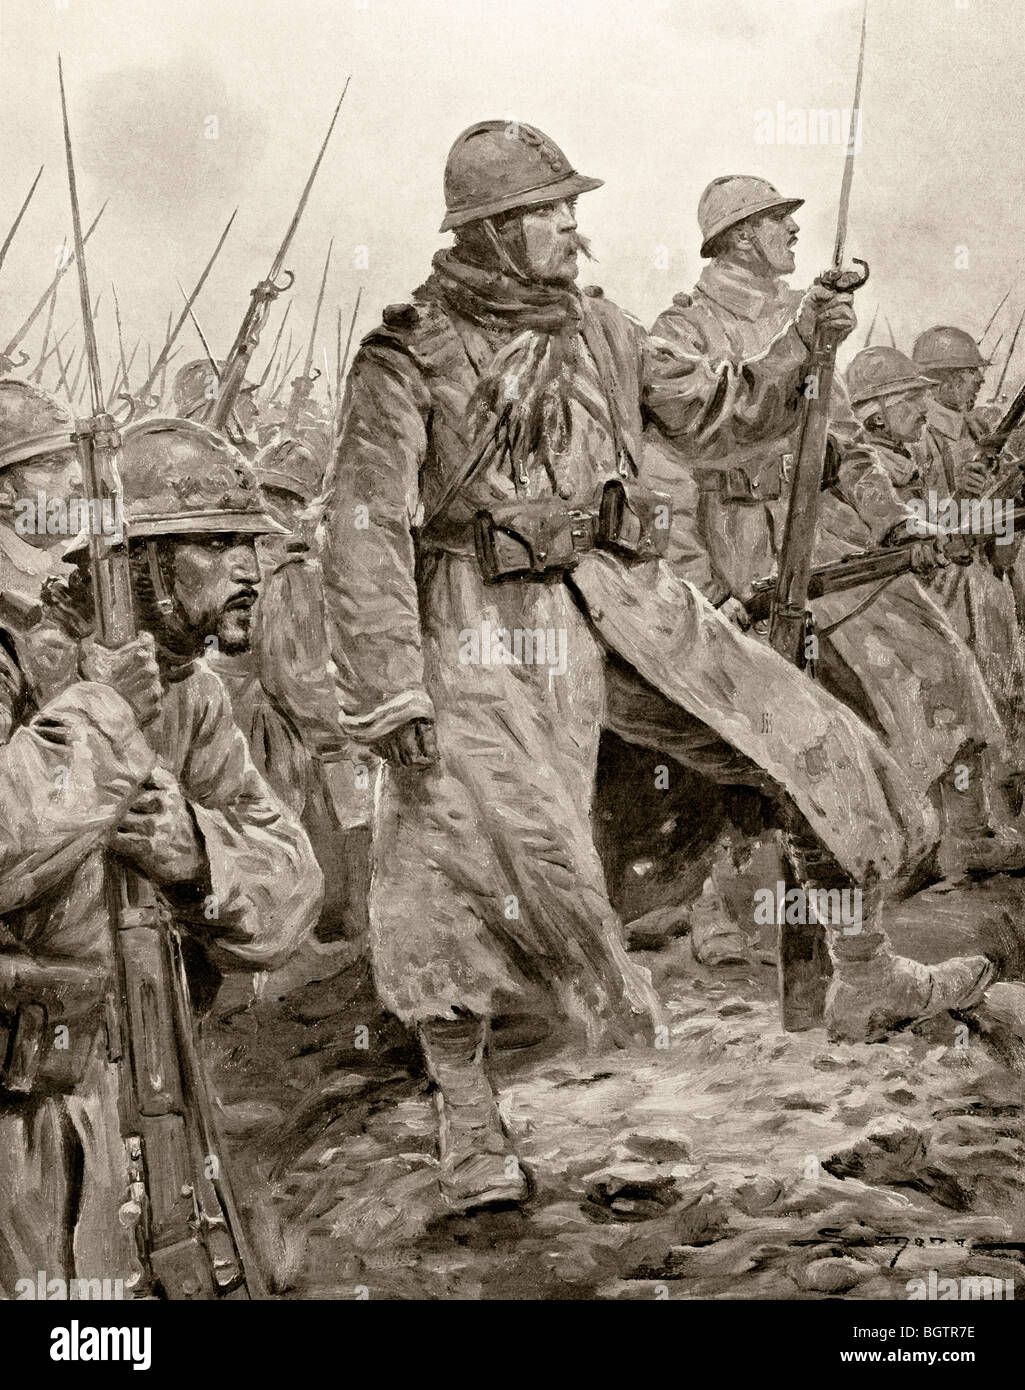 French infantry stand at the ready with fixed bayonets somewhere on the Western Front. - Stock Image